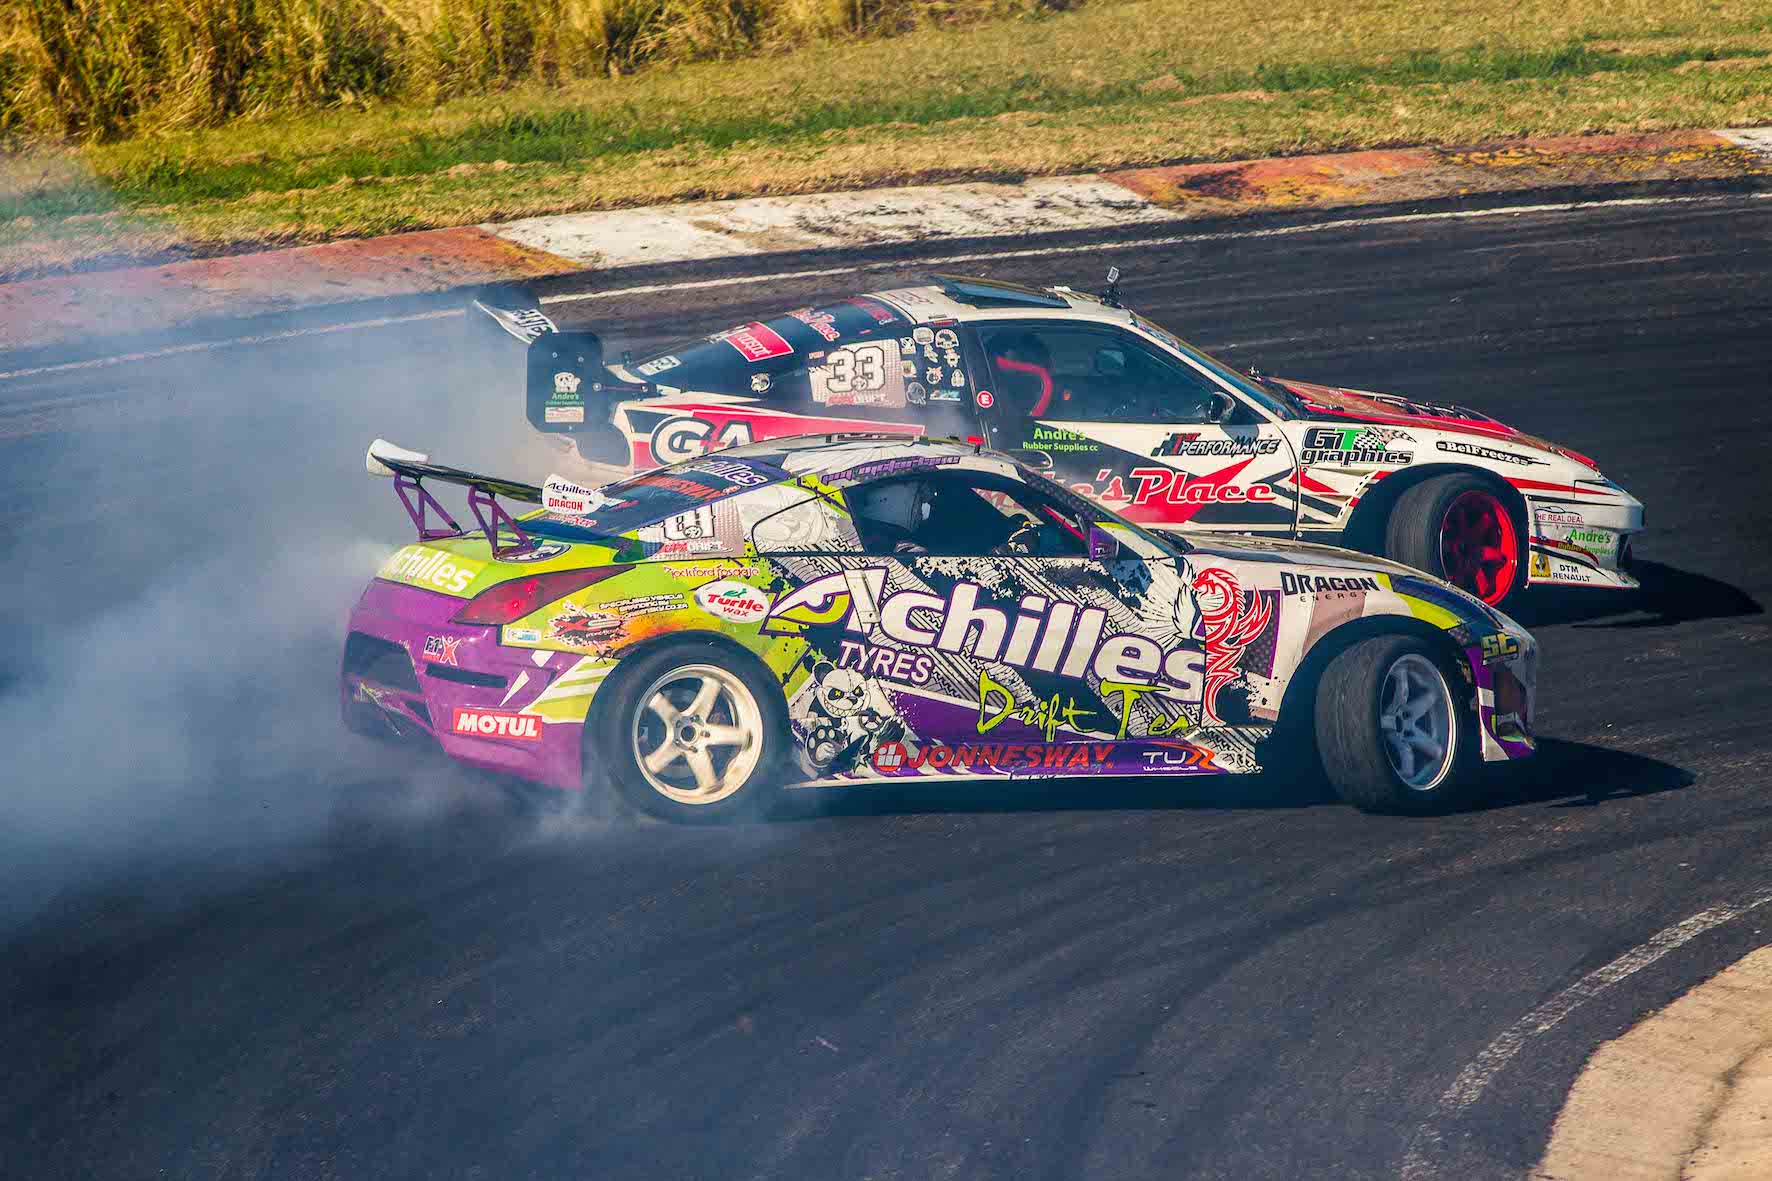 Jim Mc Farlane drifting his way to the final at the third round of the 2018 SupaDrift Series